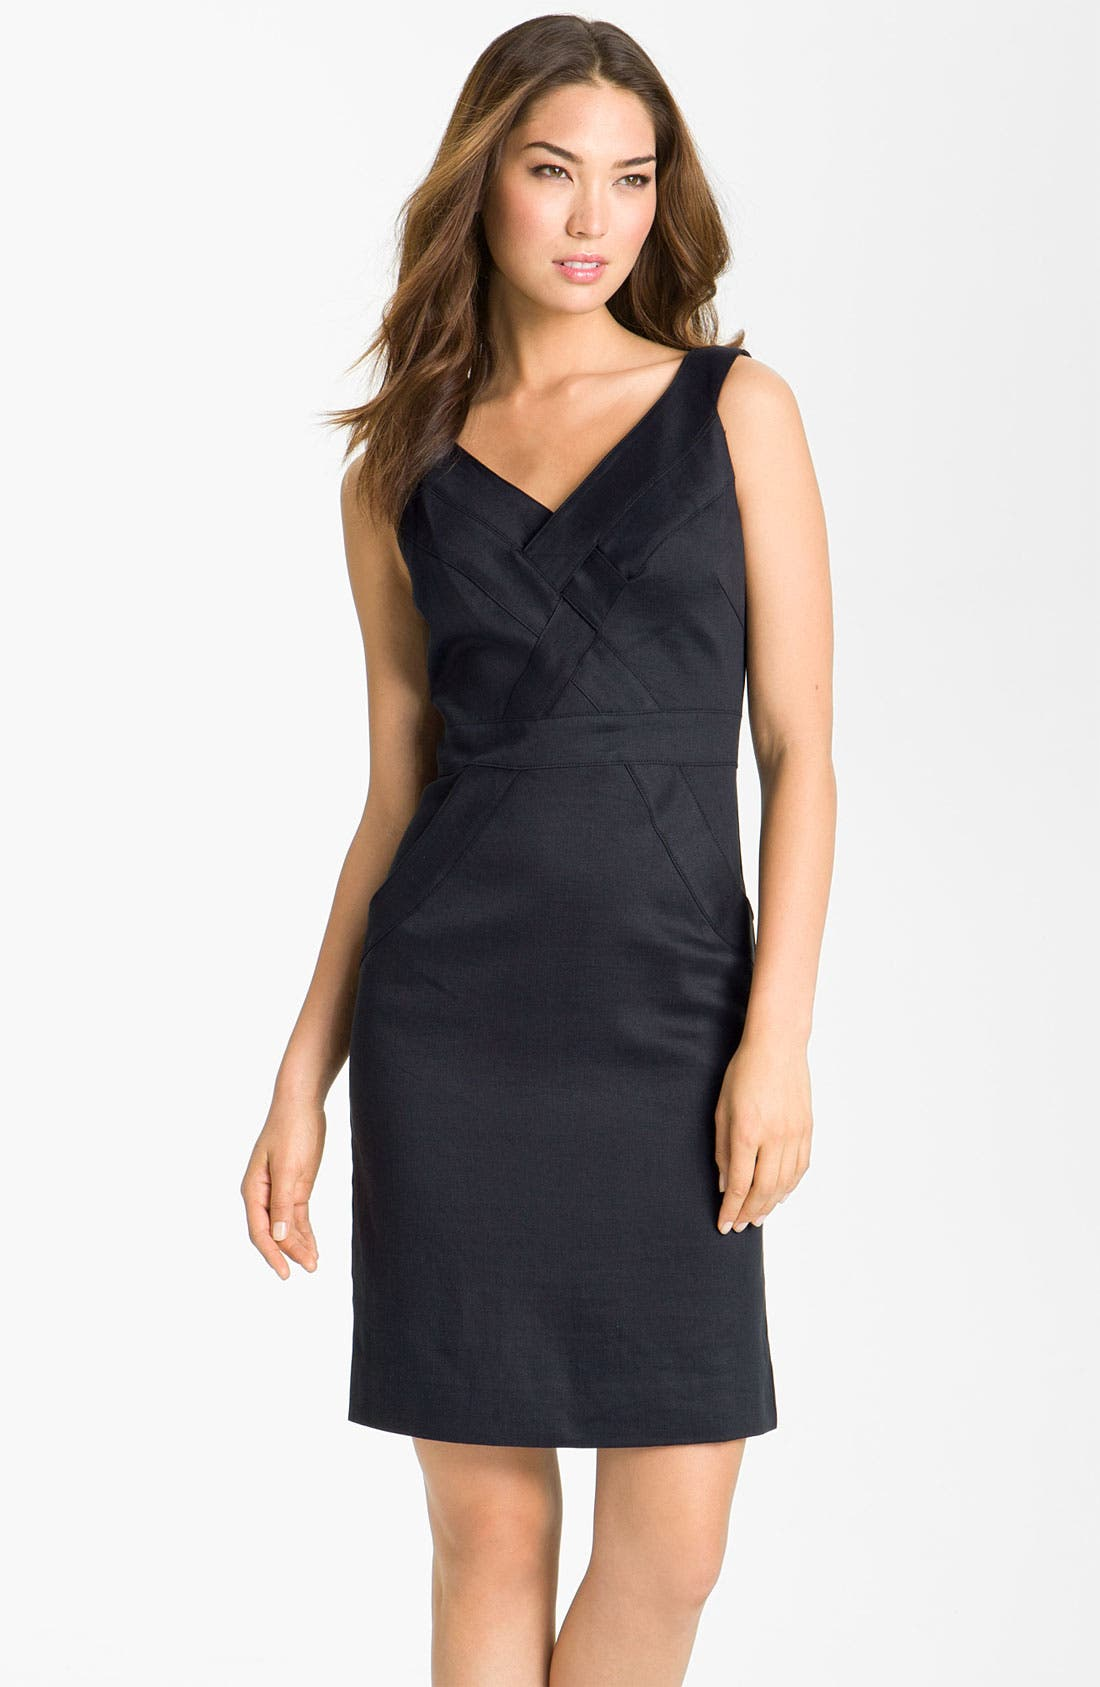 Alternate Image 1 Selected - Milly Basketweave Sleeveless Sheath Dress